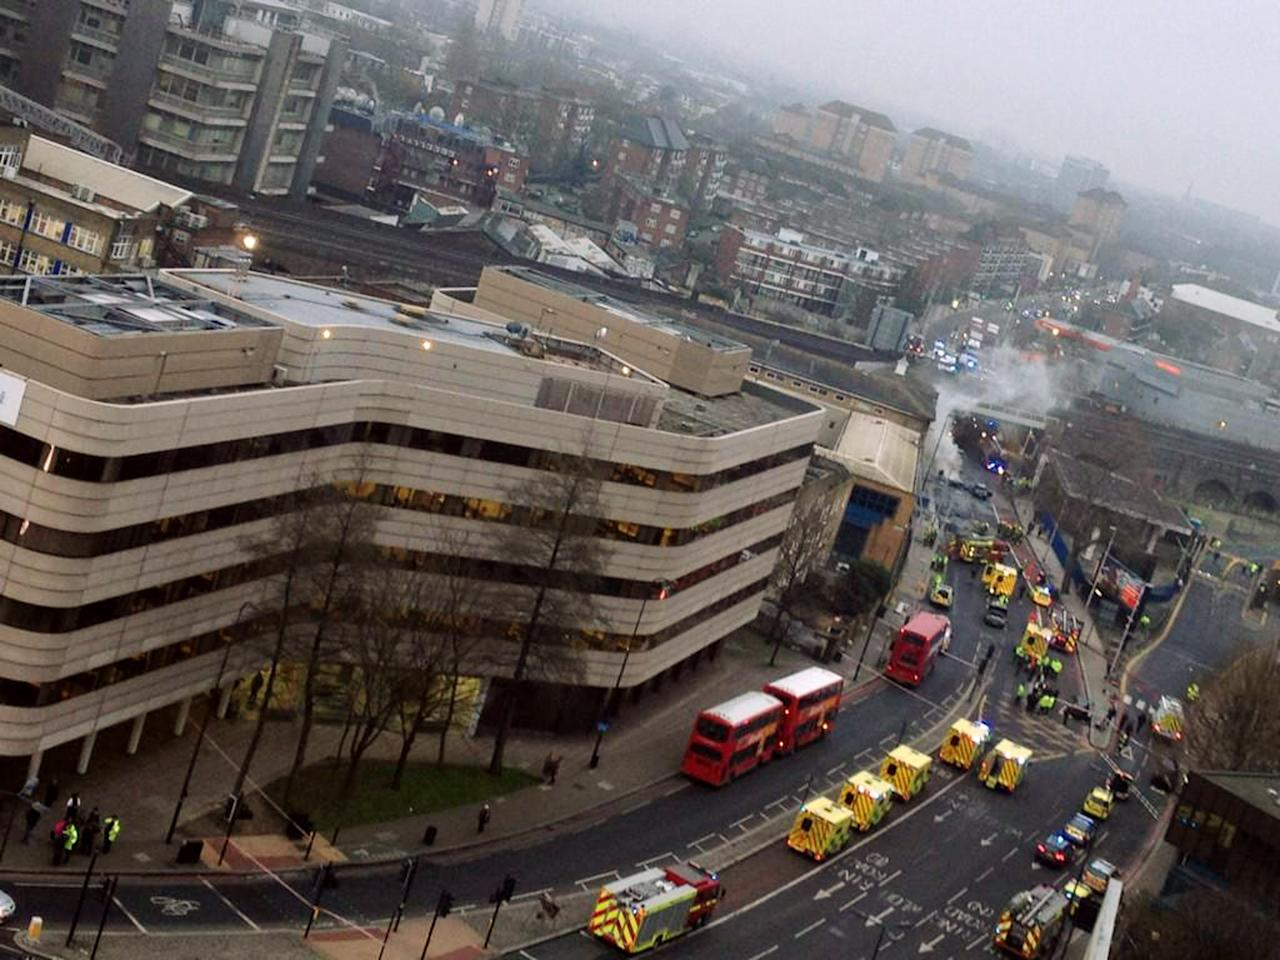 LONDON, UNITED KINGDOM - JANUARY 16: (BEST QUALITY AVAILABLE)  Emergency services building arrive as smoke pours from the burning debris of a helicopter which crashed in the Vauxhall area, January 16, 2013 in London, England.  The helicopter appeared to hit a crane attached to the nearby St Georges Wharf Tower before plunging  into the road below during the morning rush hour.   (Photo by Victor Jimenez/Getty Images)